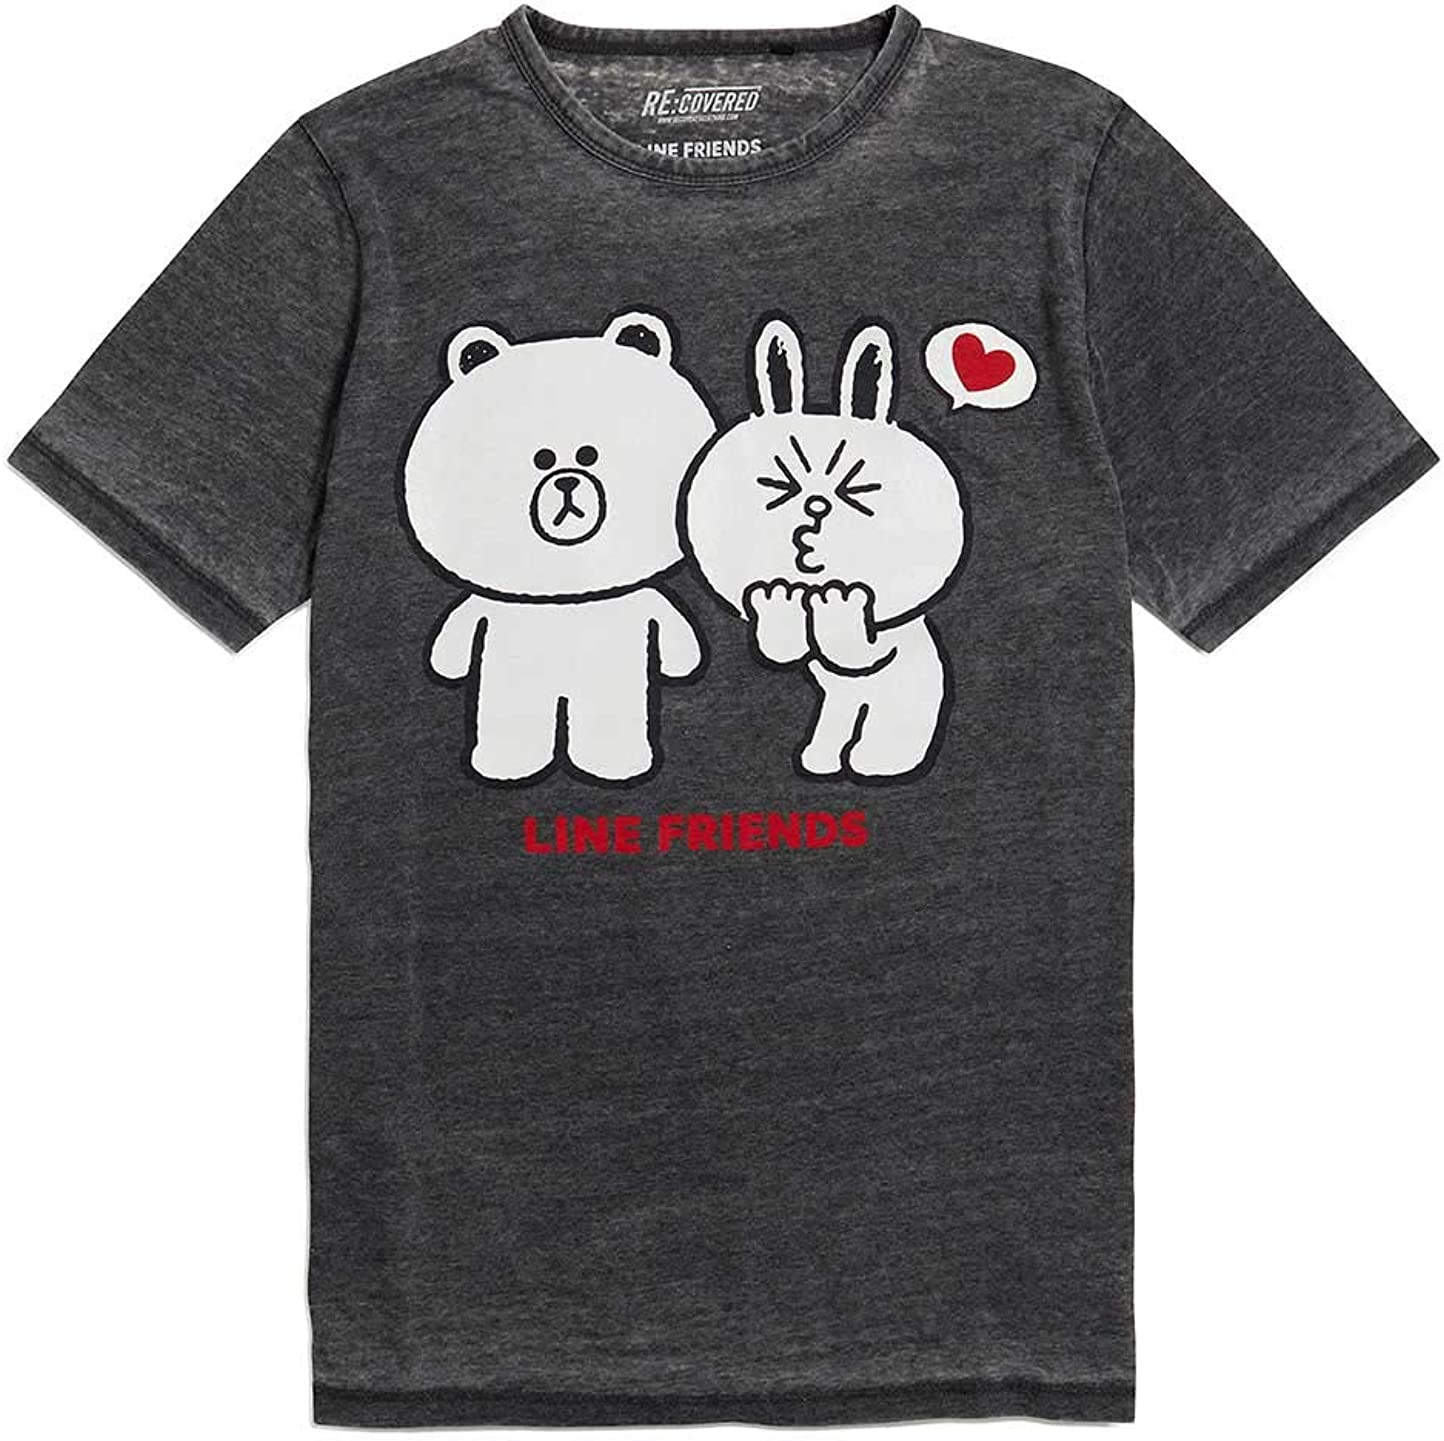 Recovered Line Friends Brown and Cony Vintage Charcoal Camiseta: Amazon.es: Ropa y accesorios